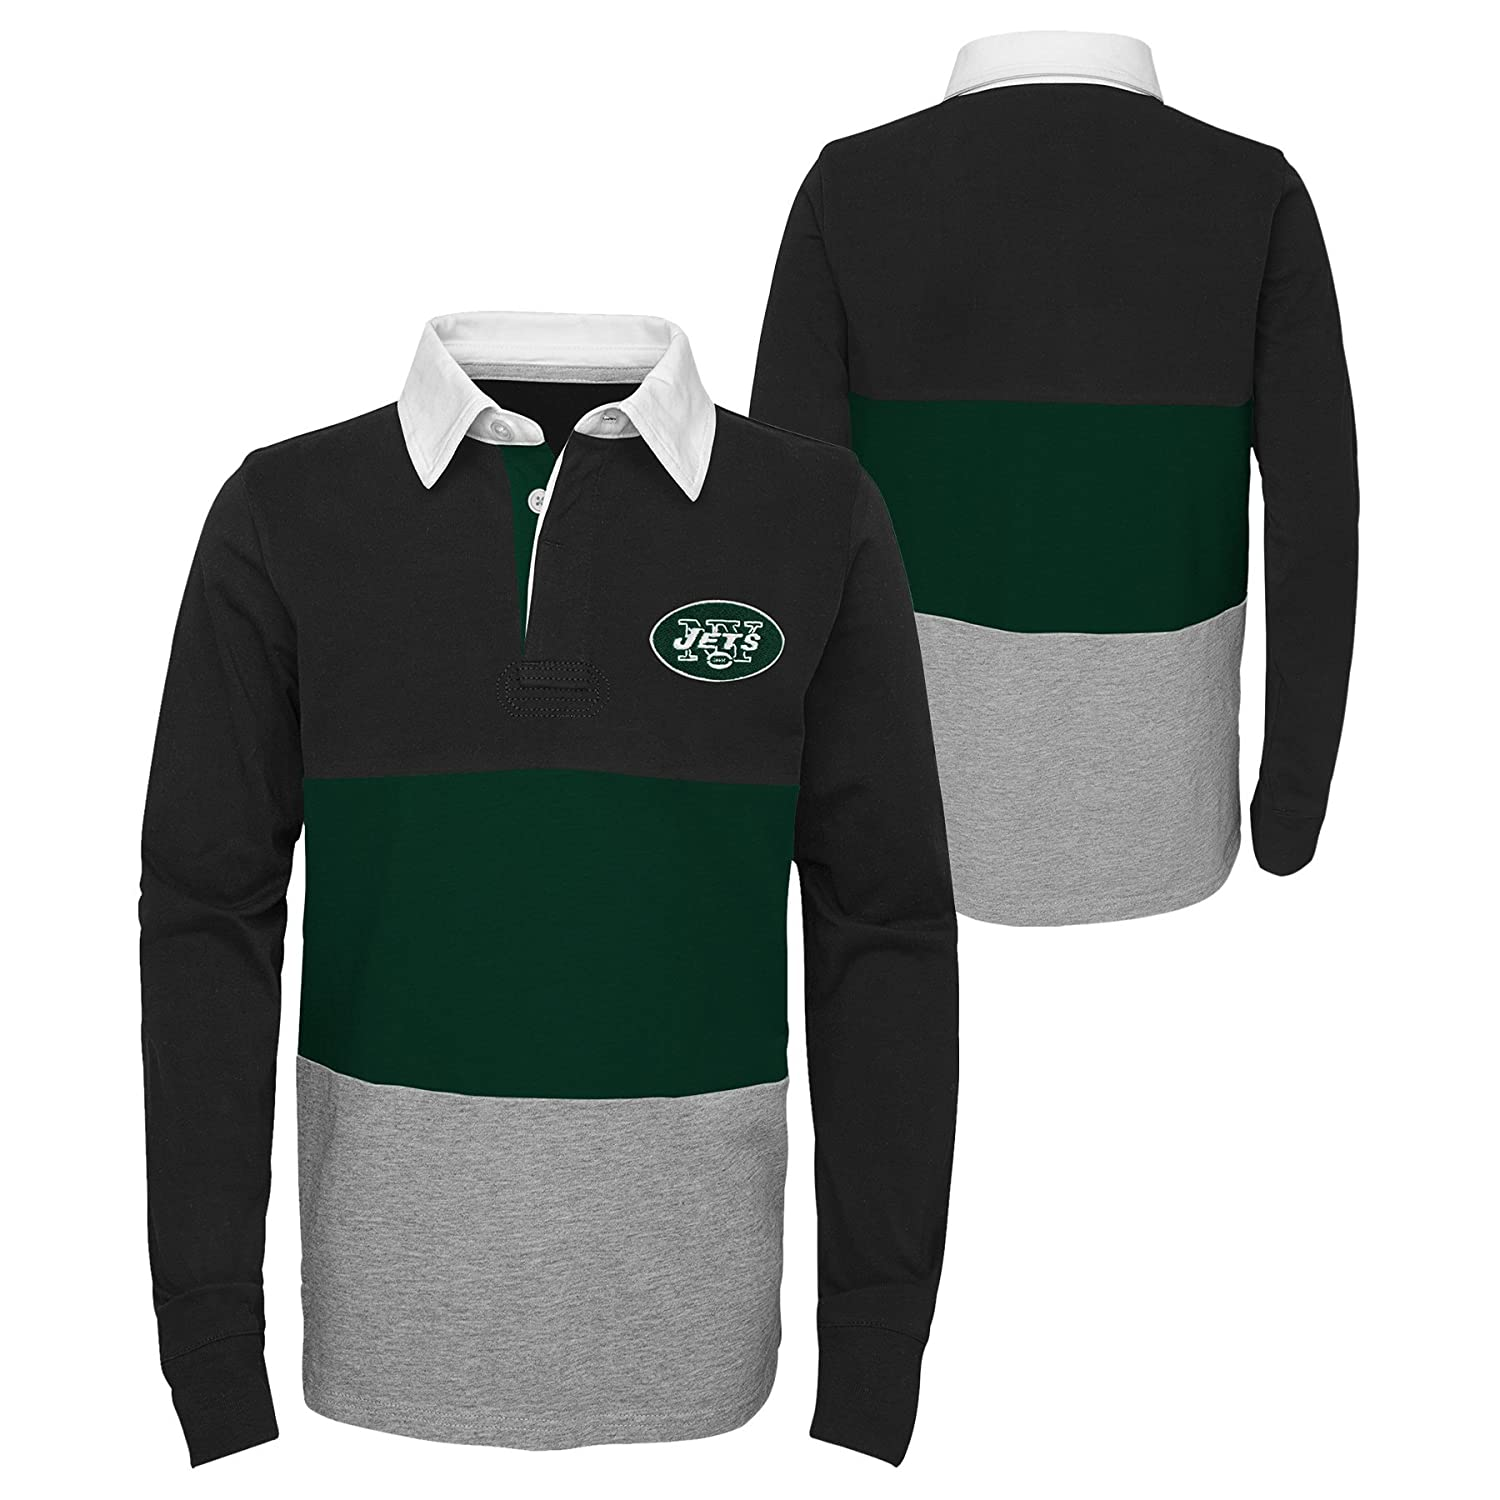 10-12 Outerstuff NFL New York Jets Youth Boys State of Mind Long Sleeve Rugby Top Black Youth Medium